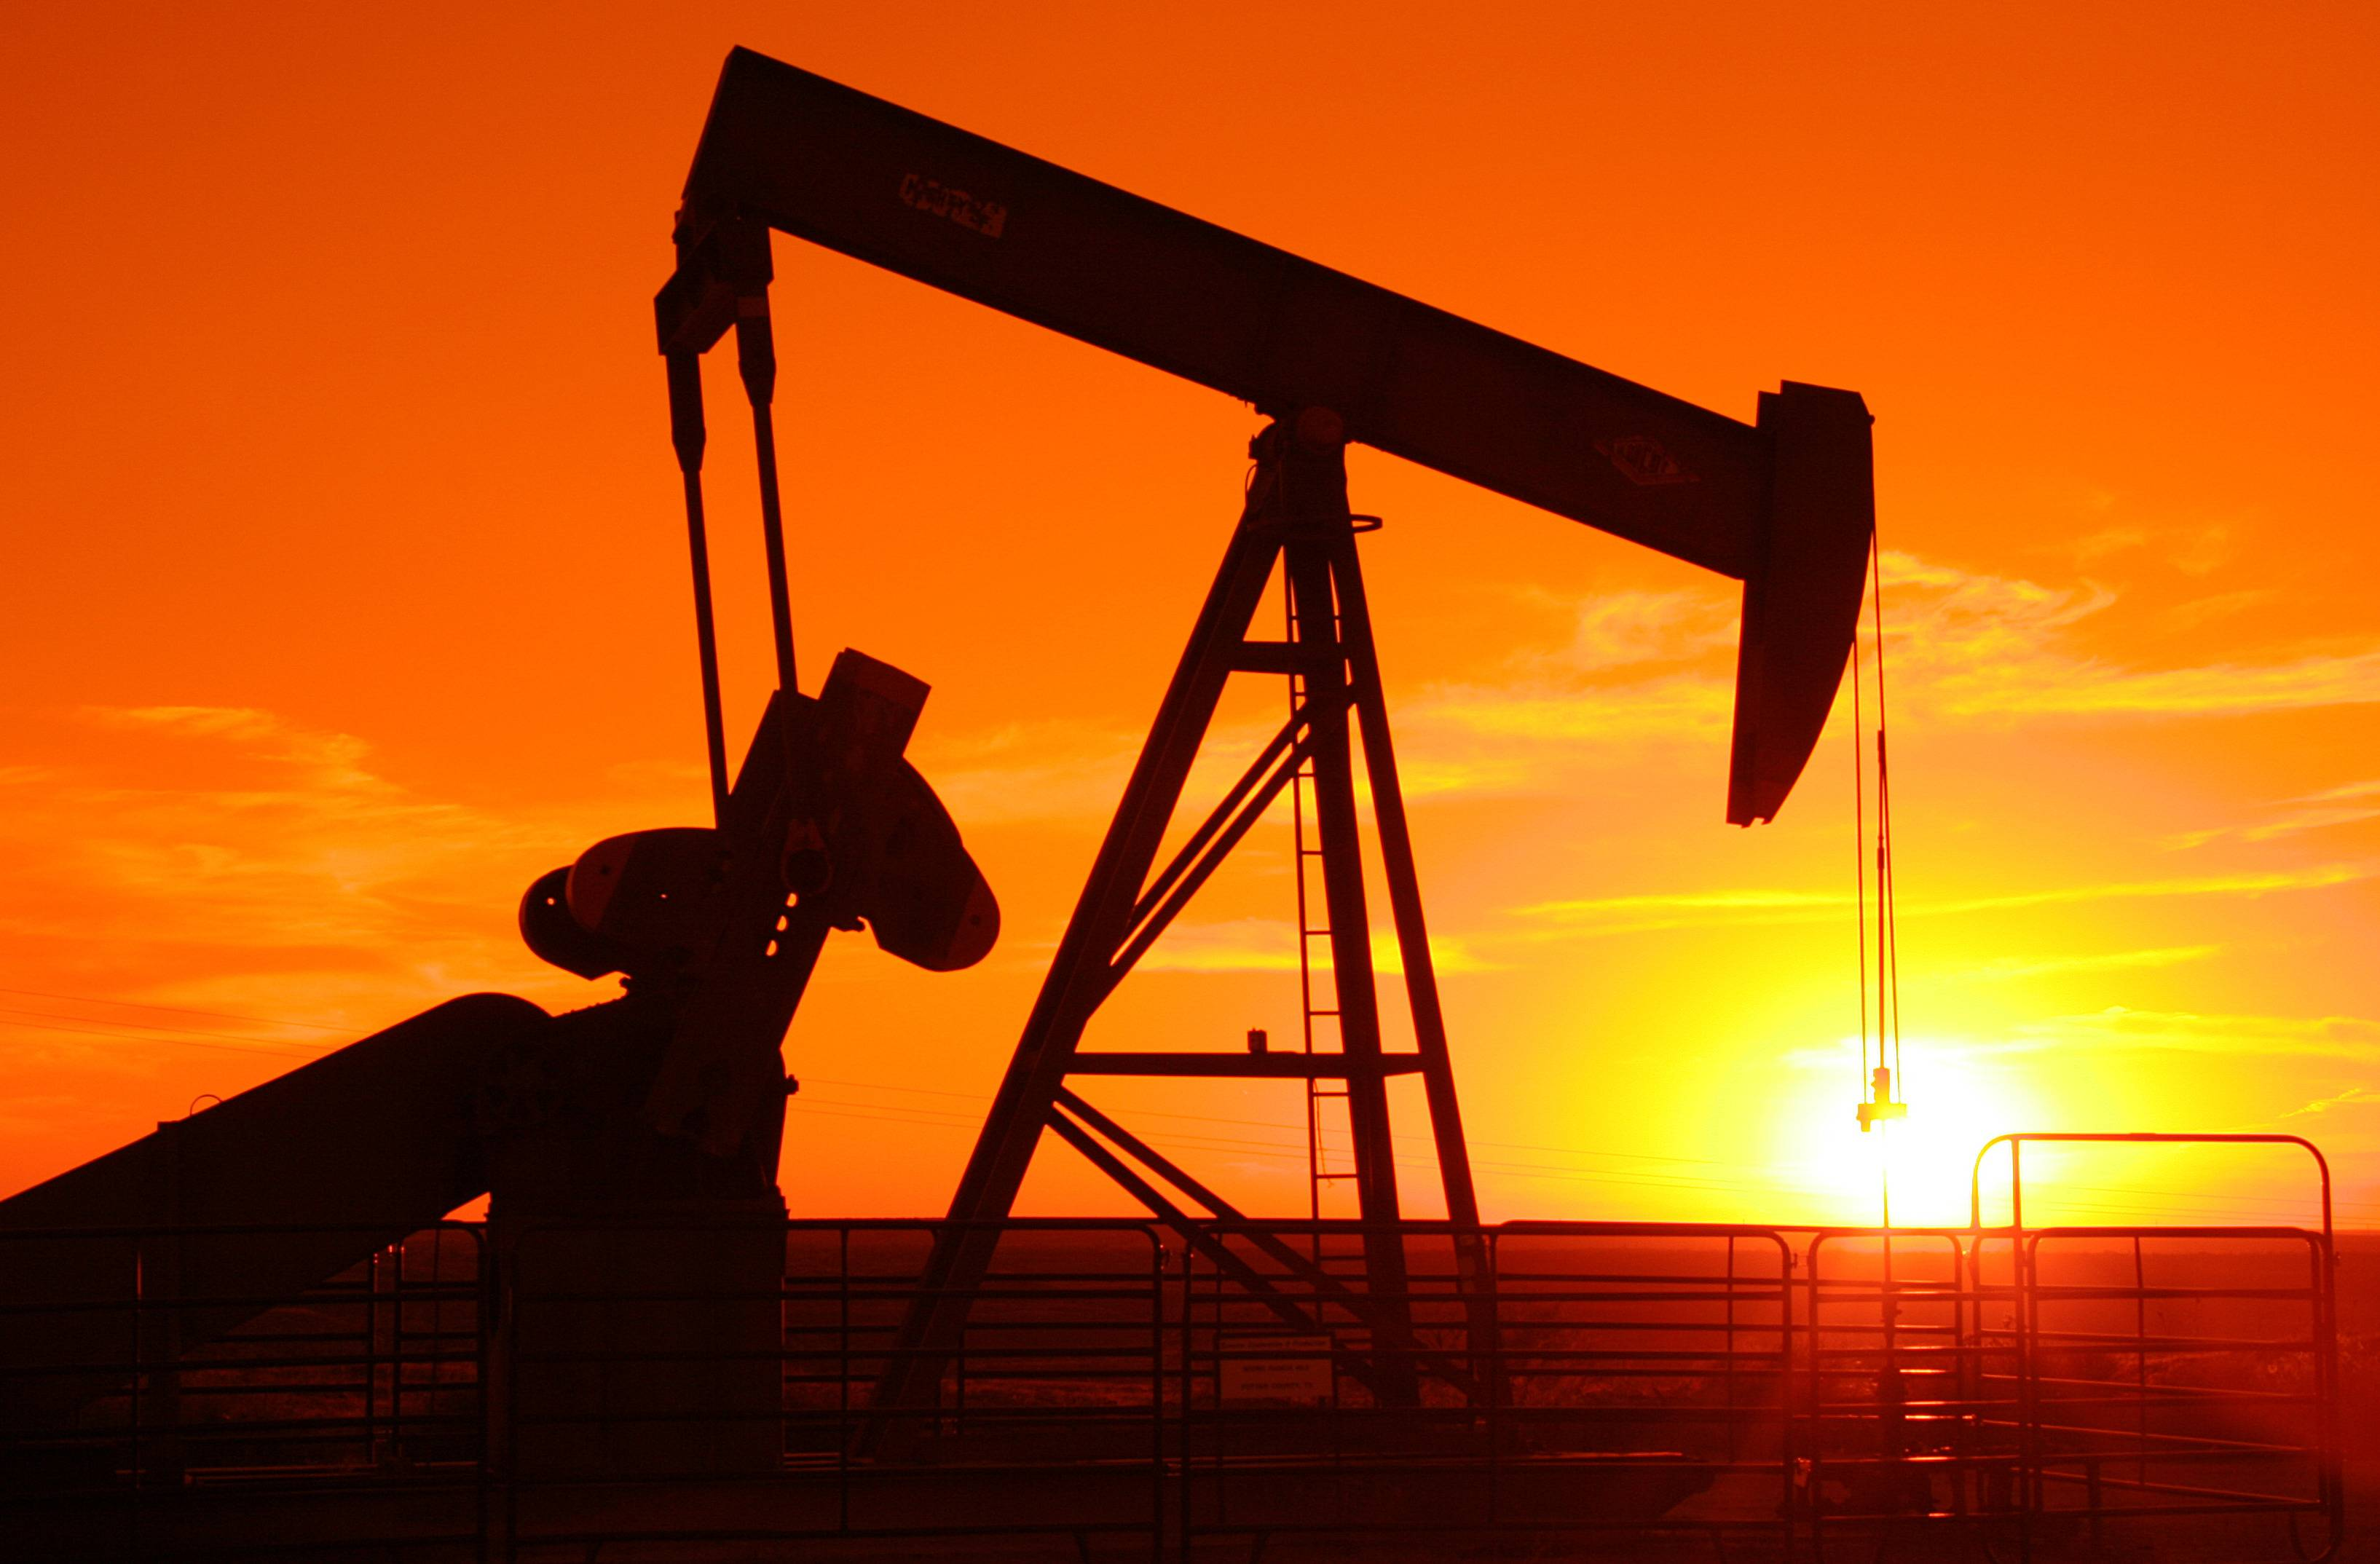 via http://sprottmoneyblog.com/opec-seeks-to-destroy-us-oil-production-could-another-recession-be-on-the-way/